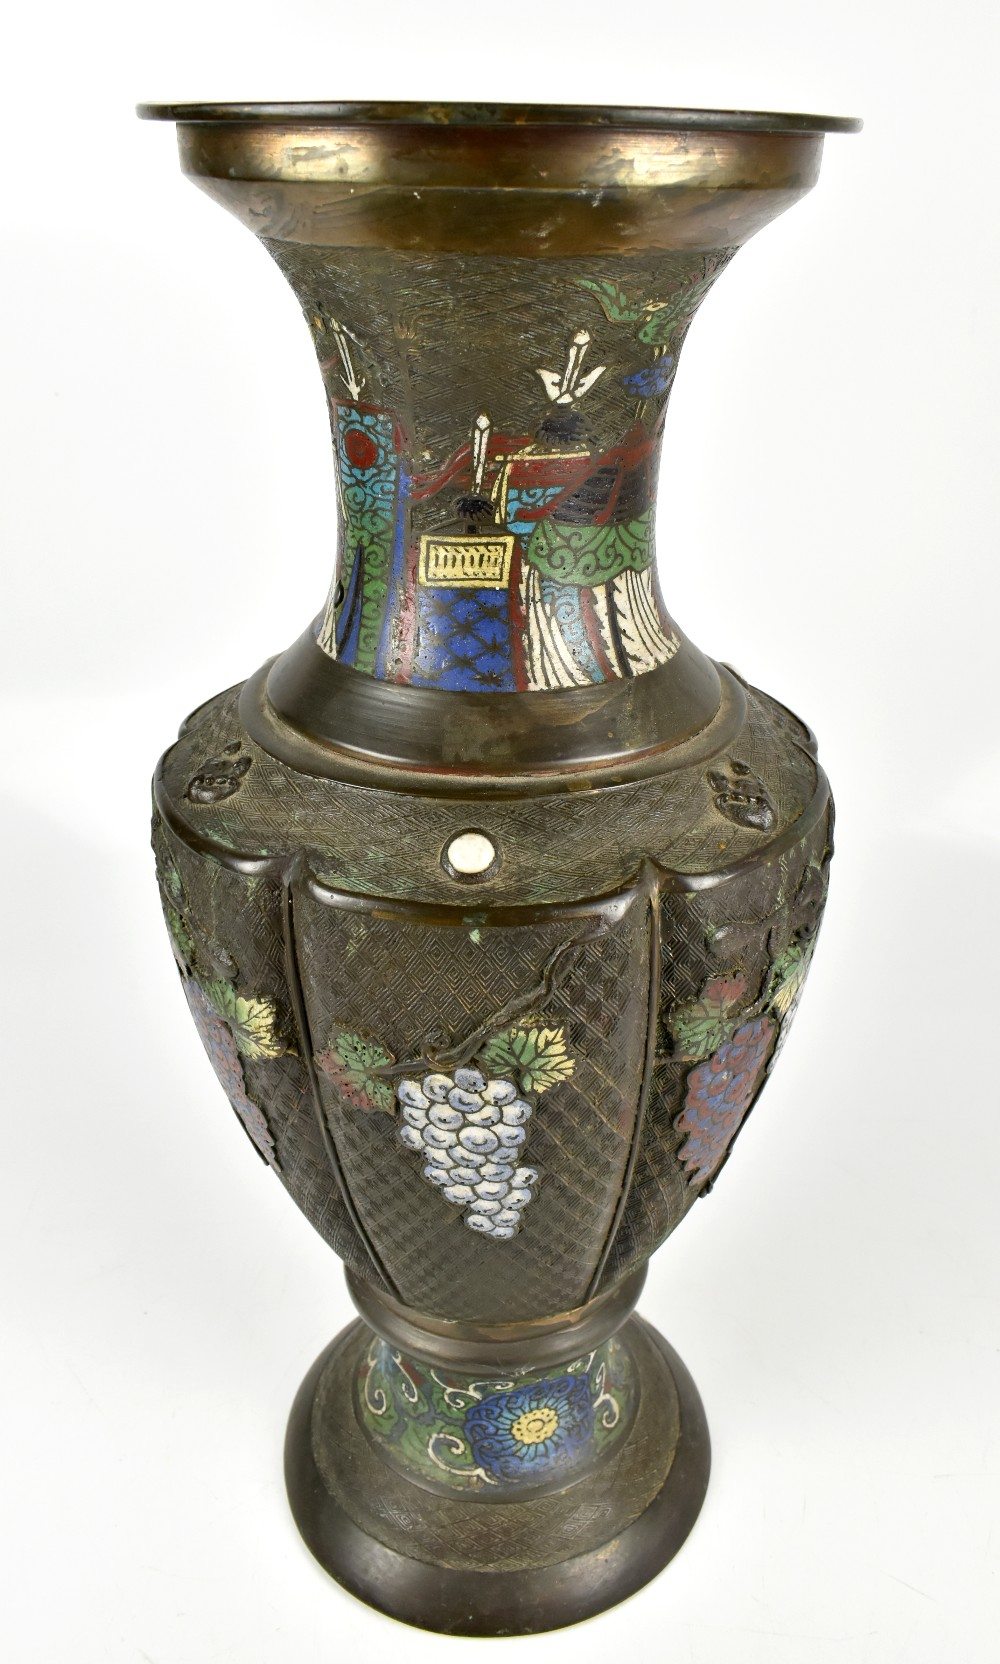 A large Japanese bronze vase with enamelled and relief floral and grape decoration and taotie